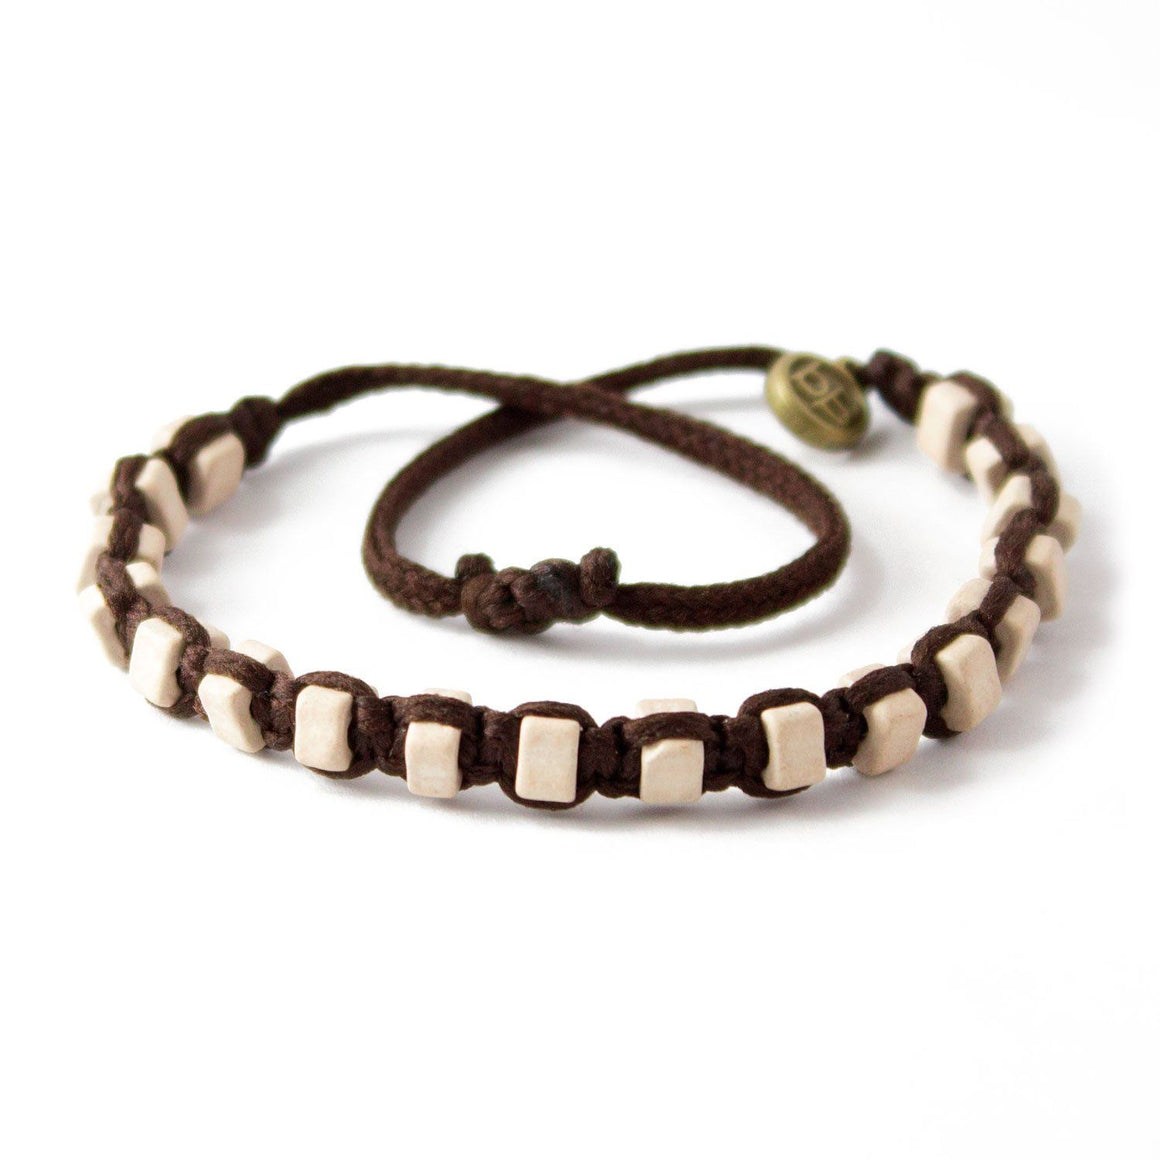 White Andes Chocolate Brown macrame artisan bracelets cover